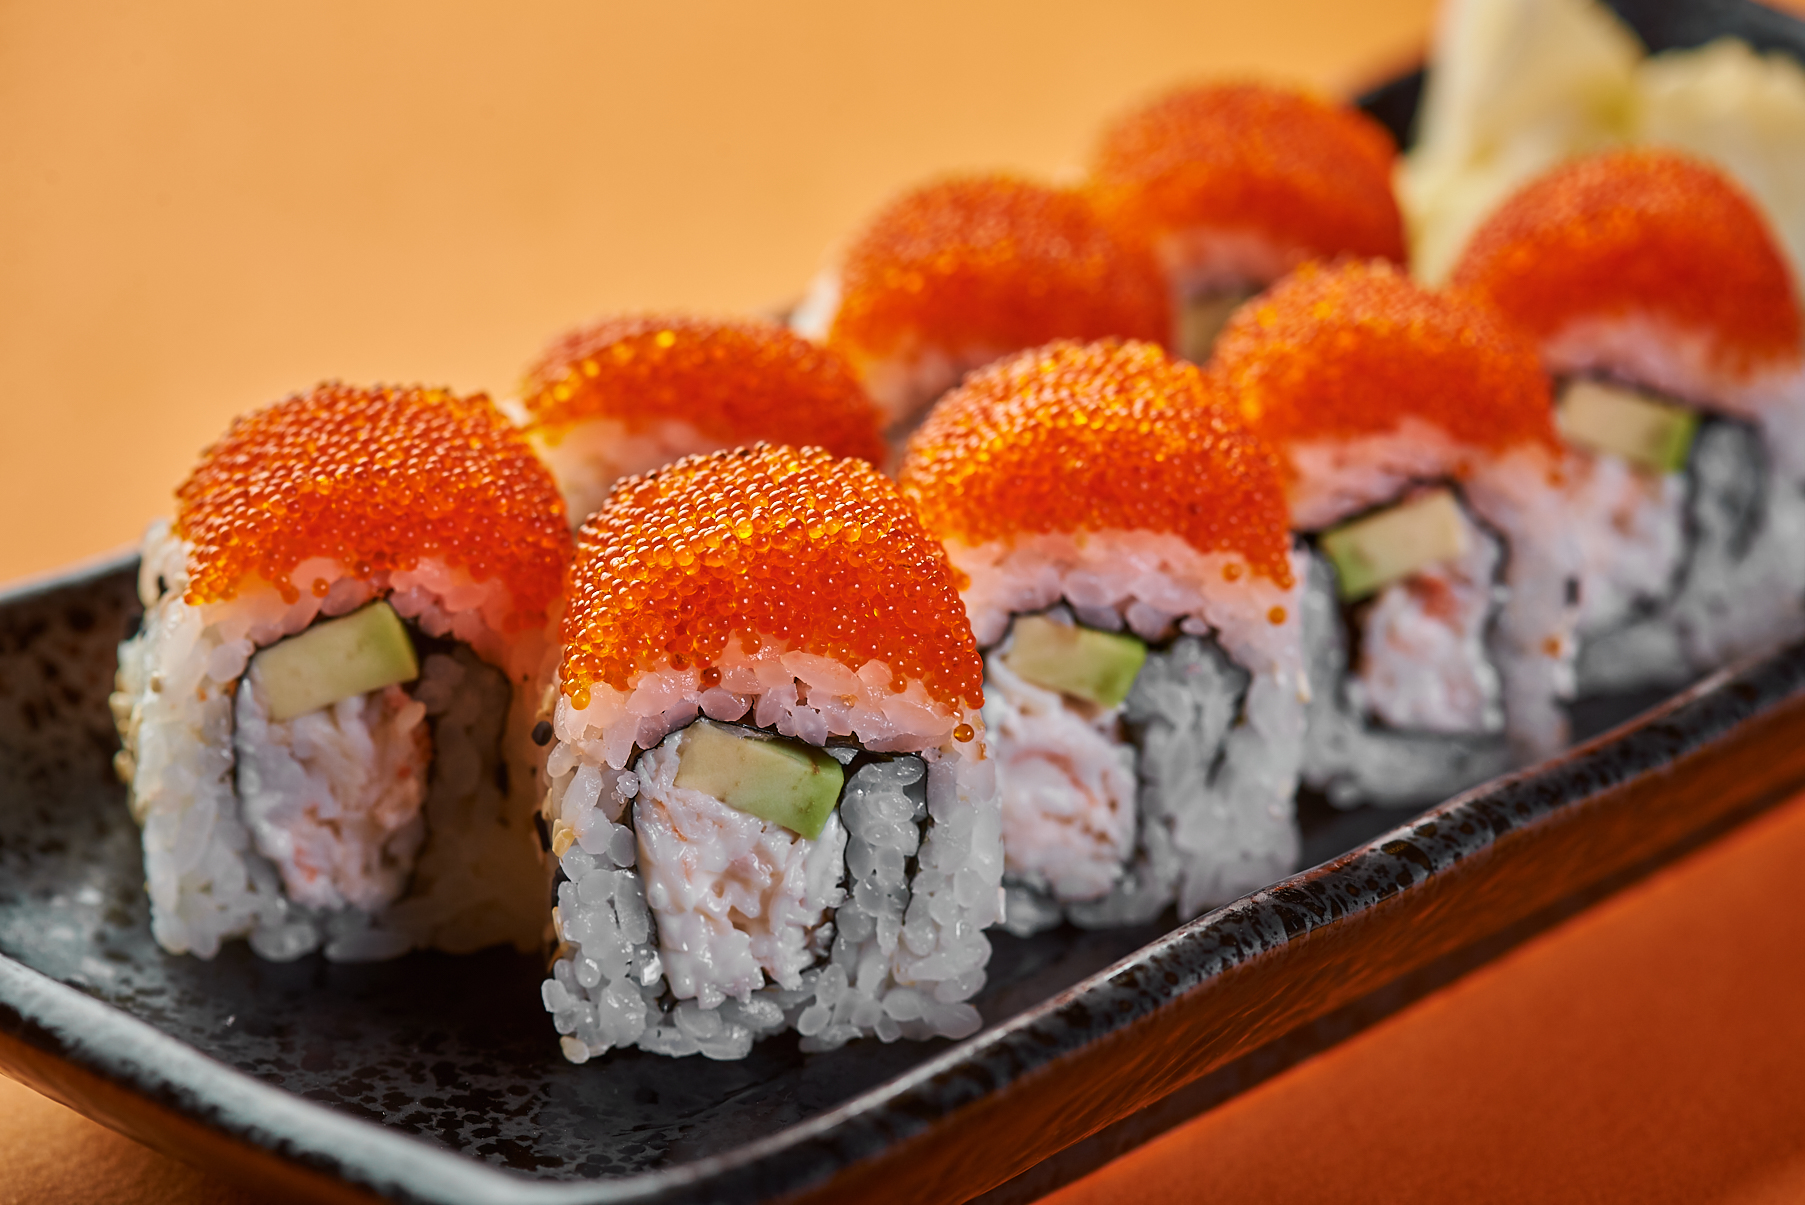 California roll 950₽